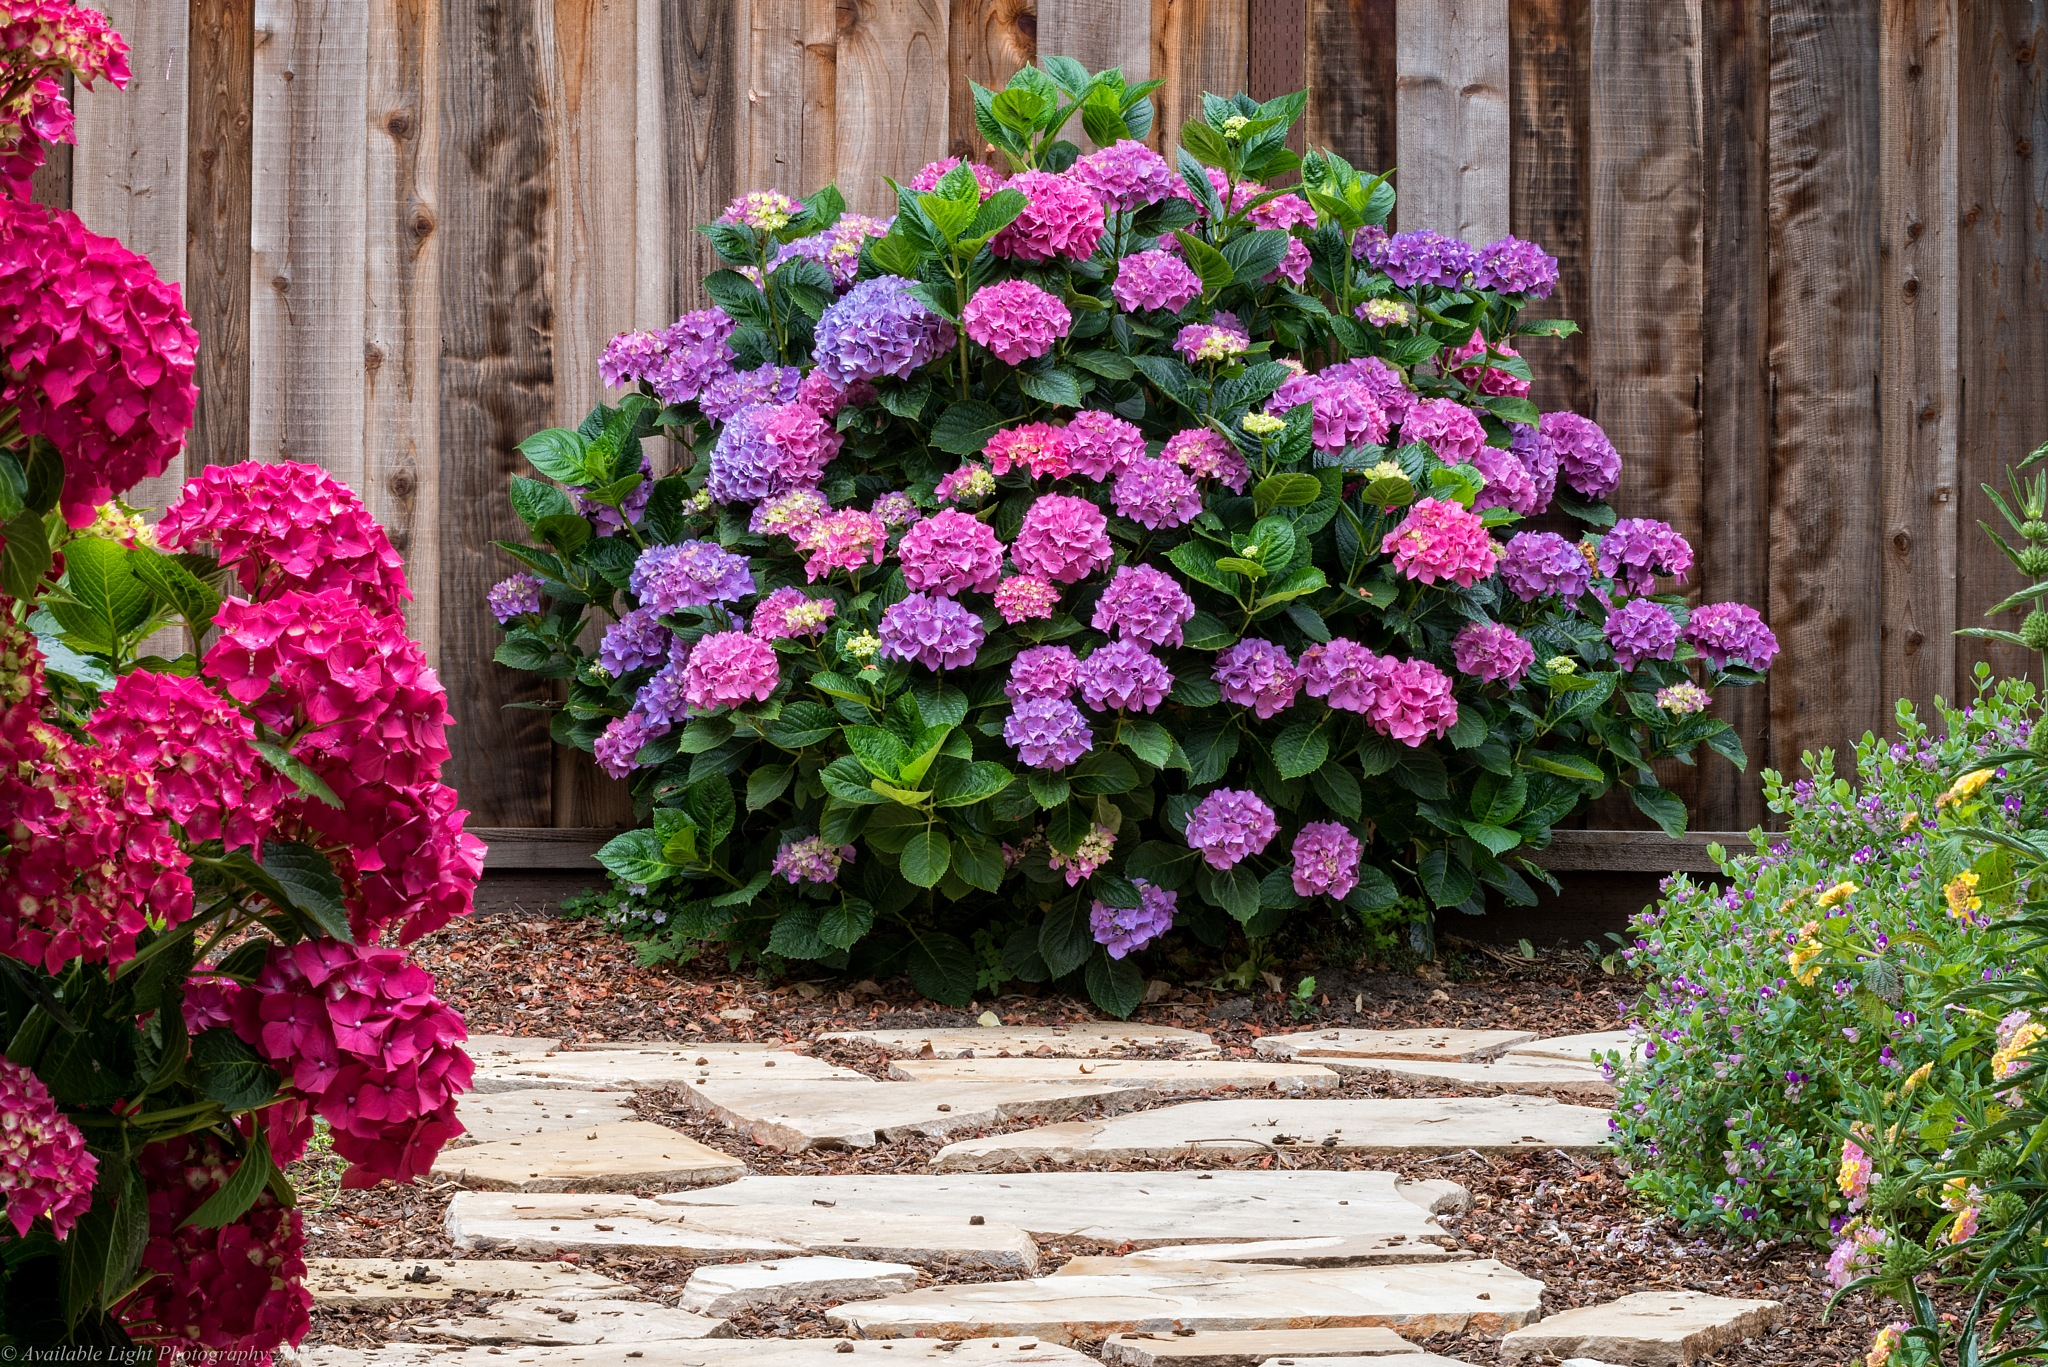 Backyard color by Available Light Photography